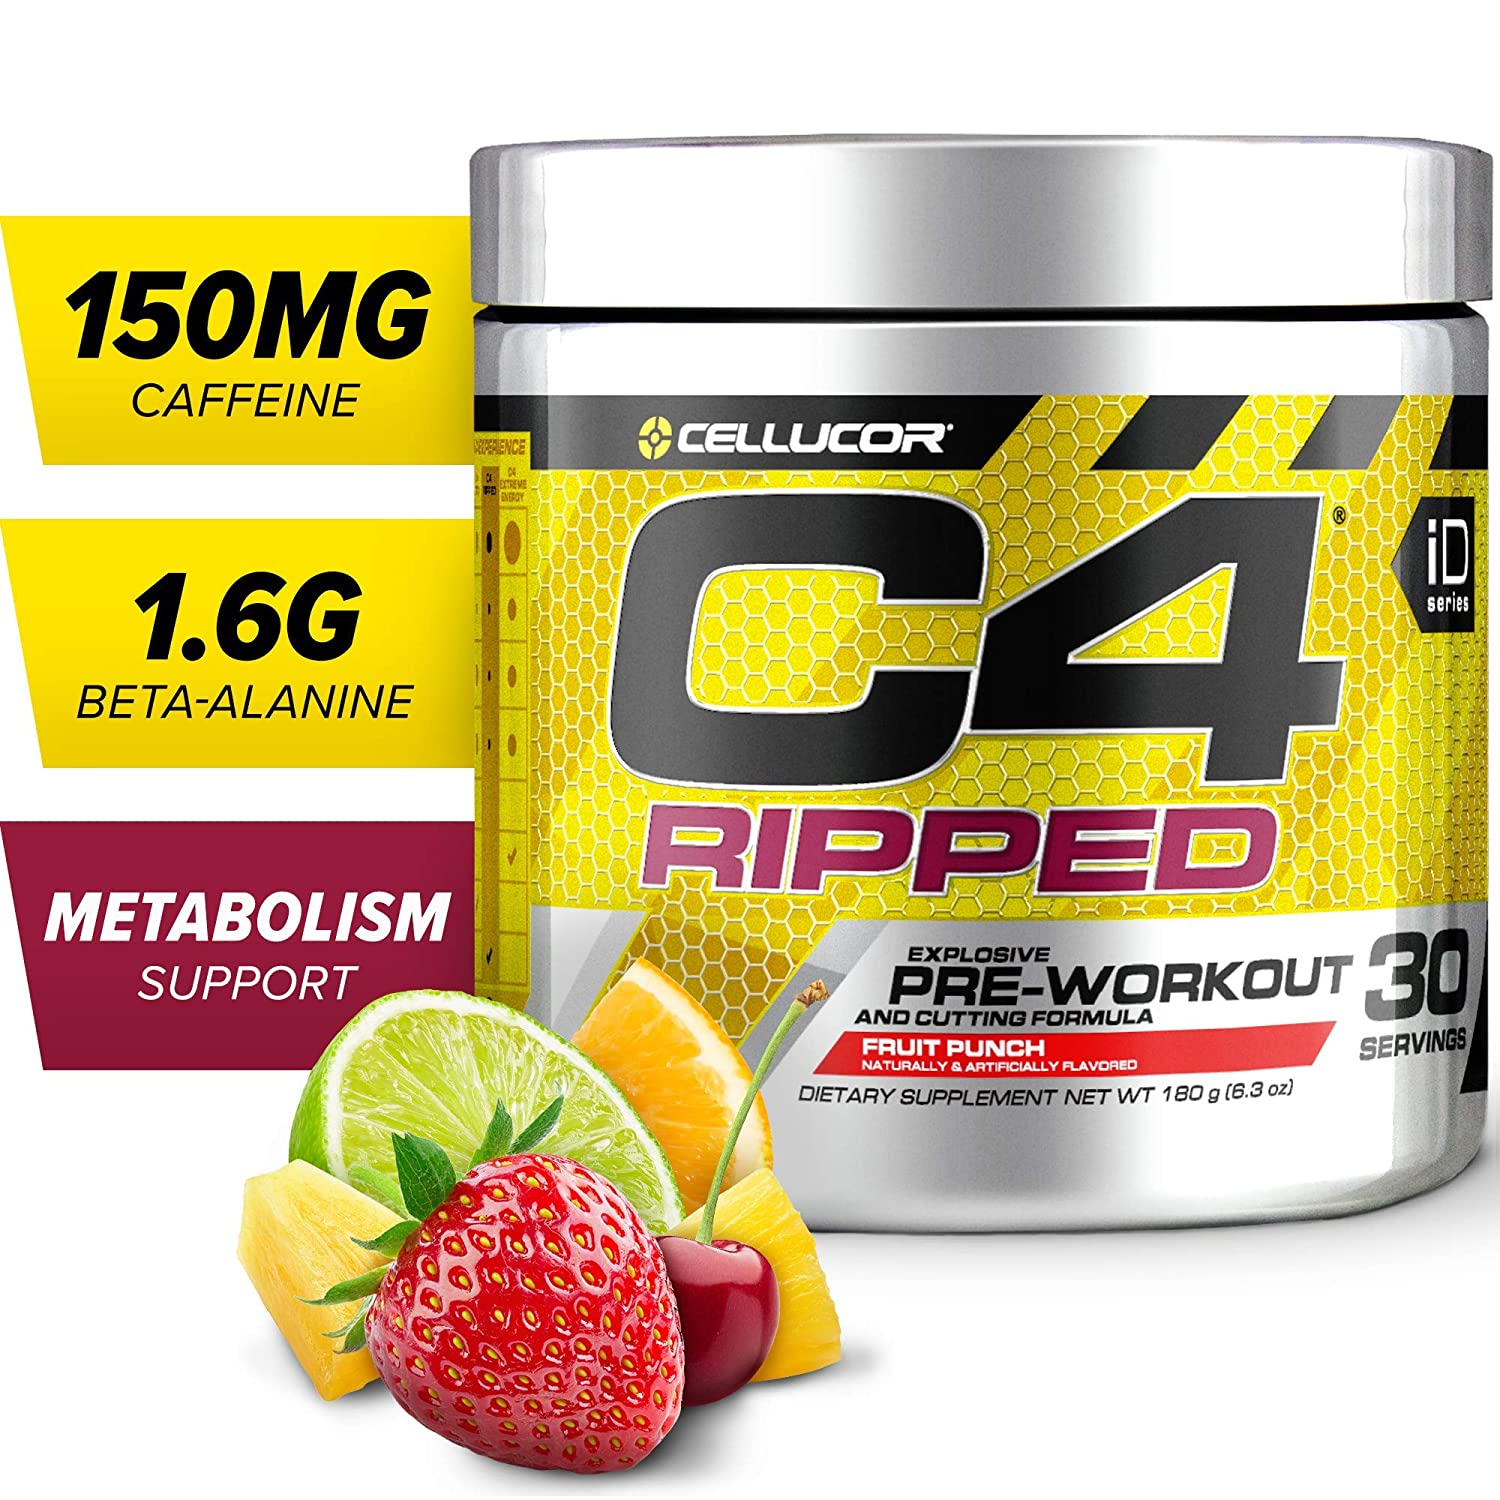 9. C4 Ripped Pre-Workout Without Creatine